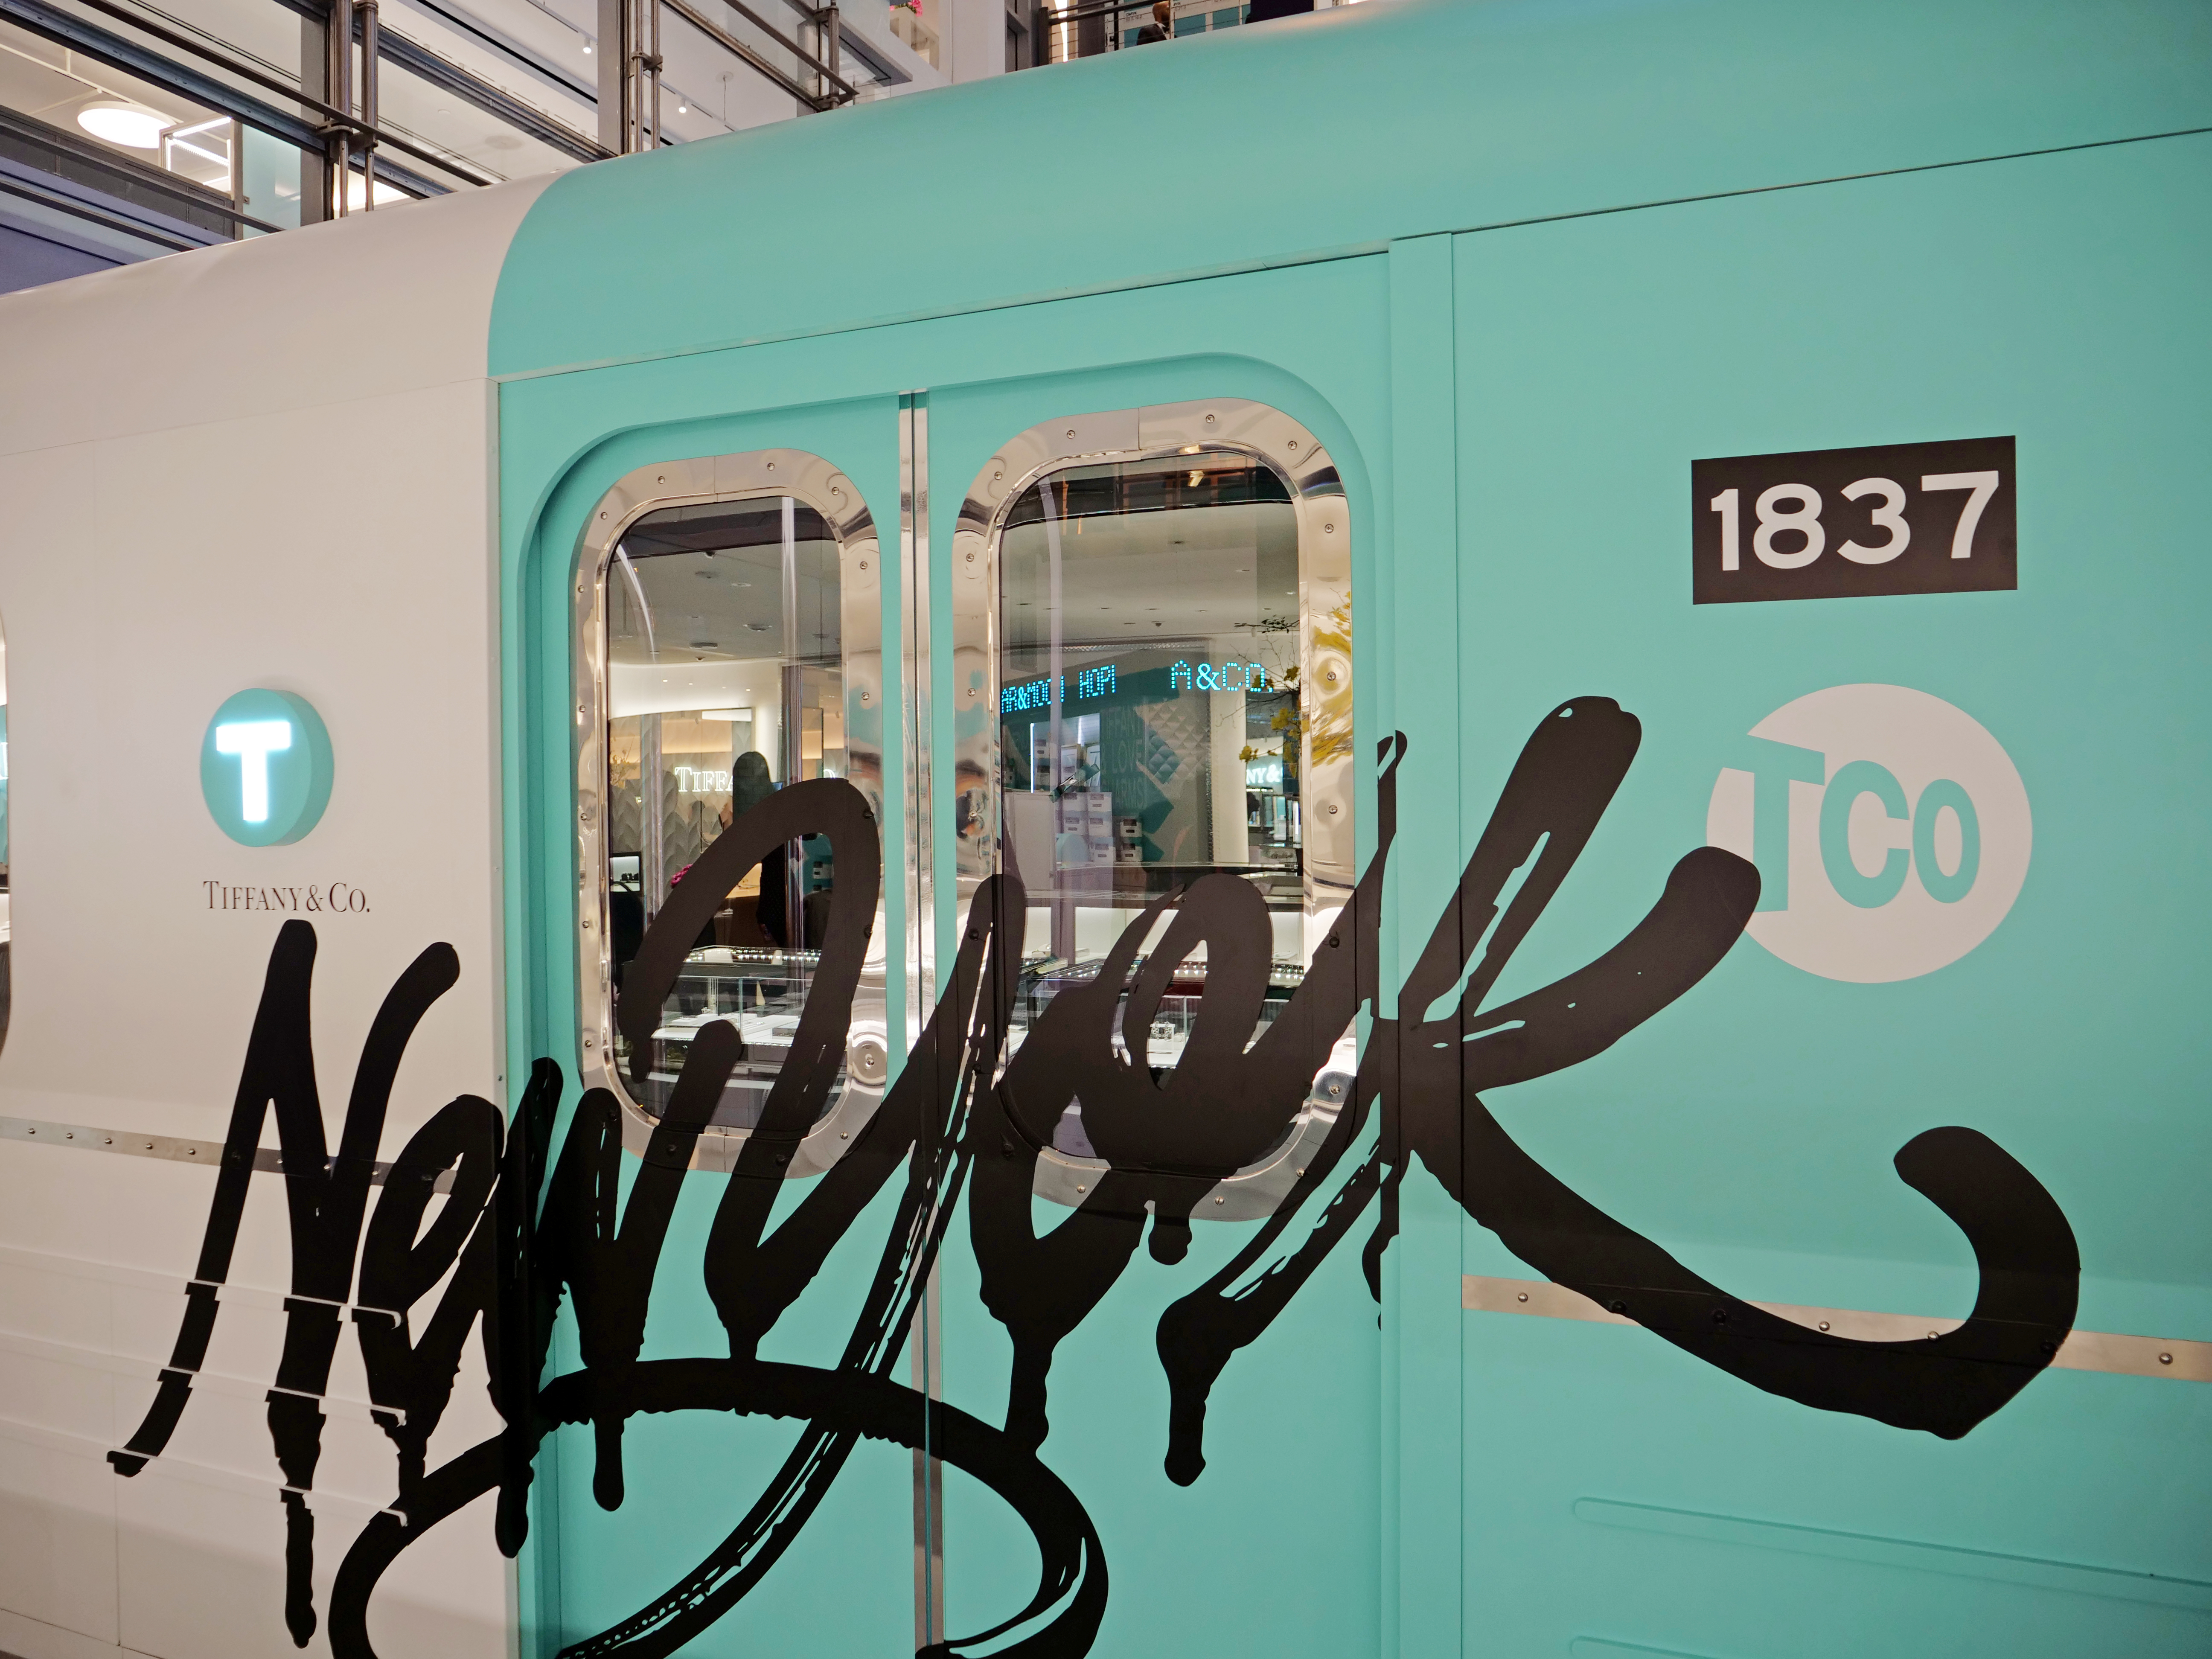 NYC Tiffany and Co Valentine's Day Subway train graffiti blue Flower Installation